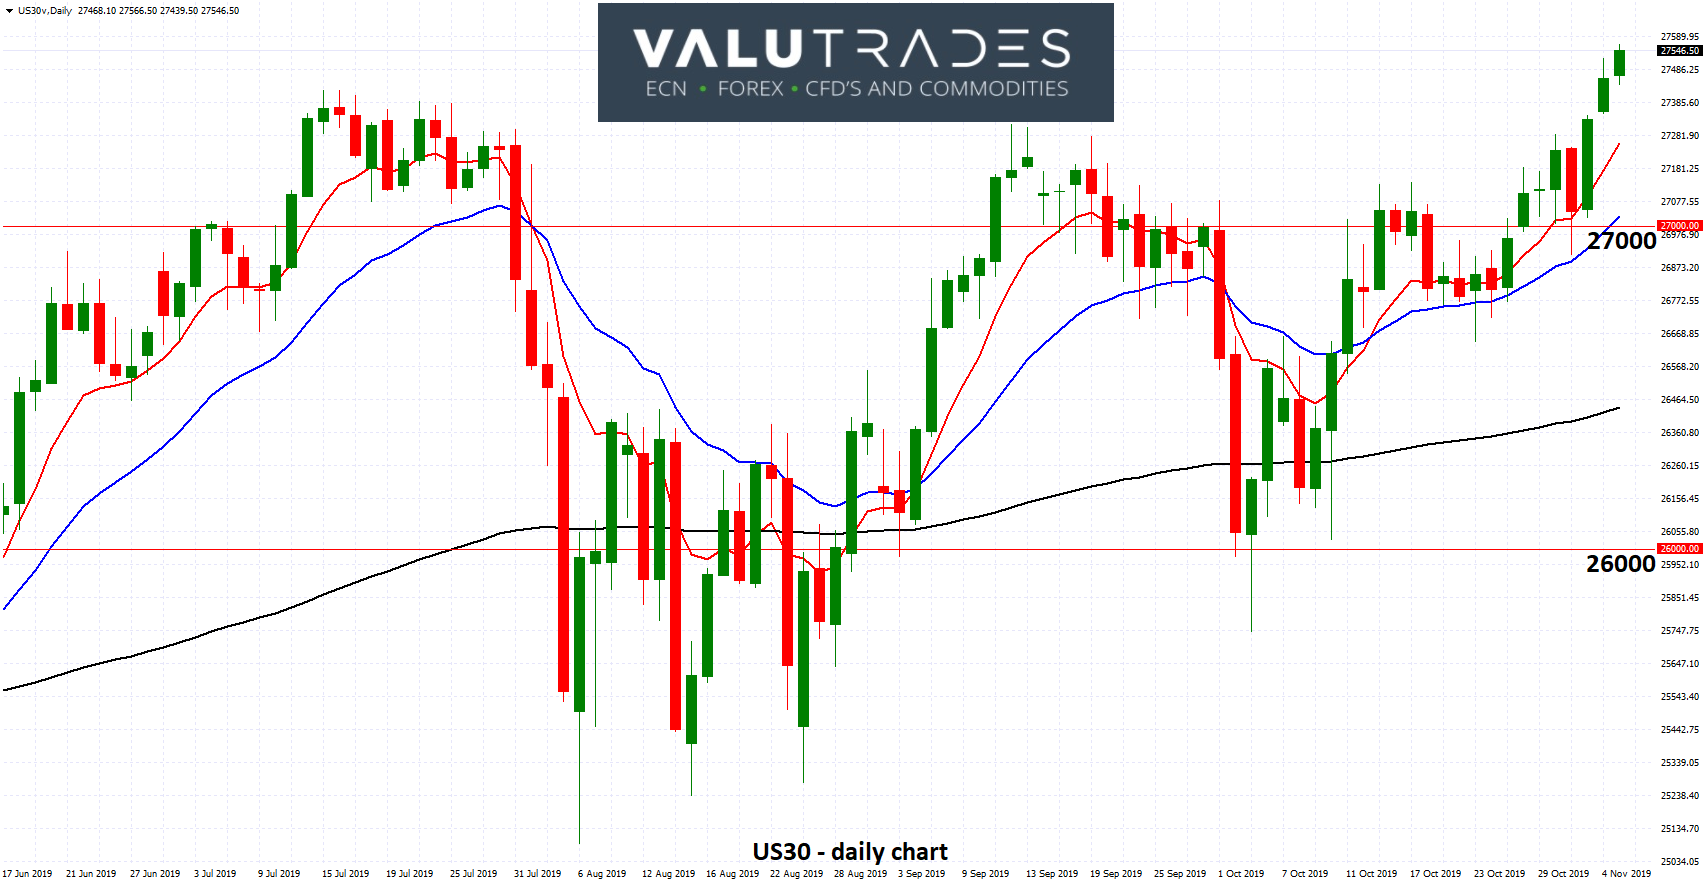 US30 - Trades to All Time Highs above 27500 as Fed Signals Rates Pause